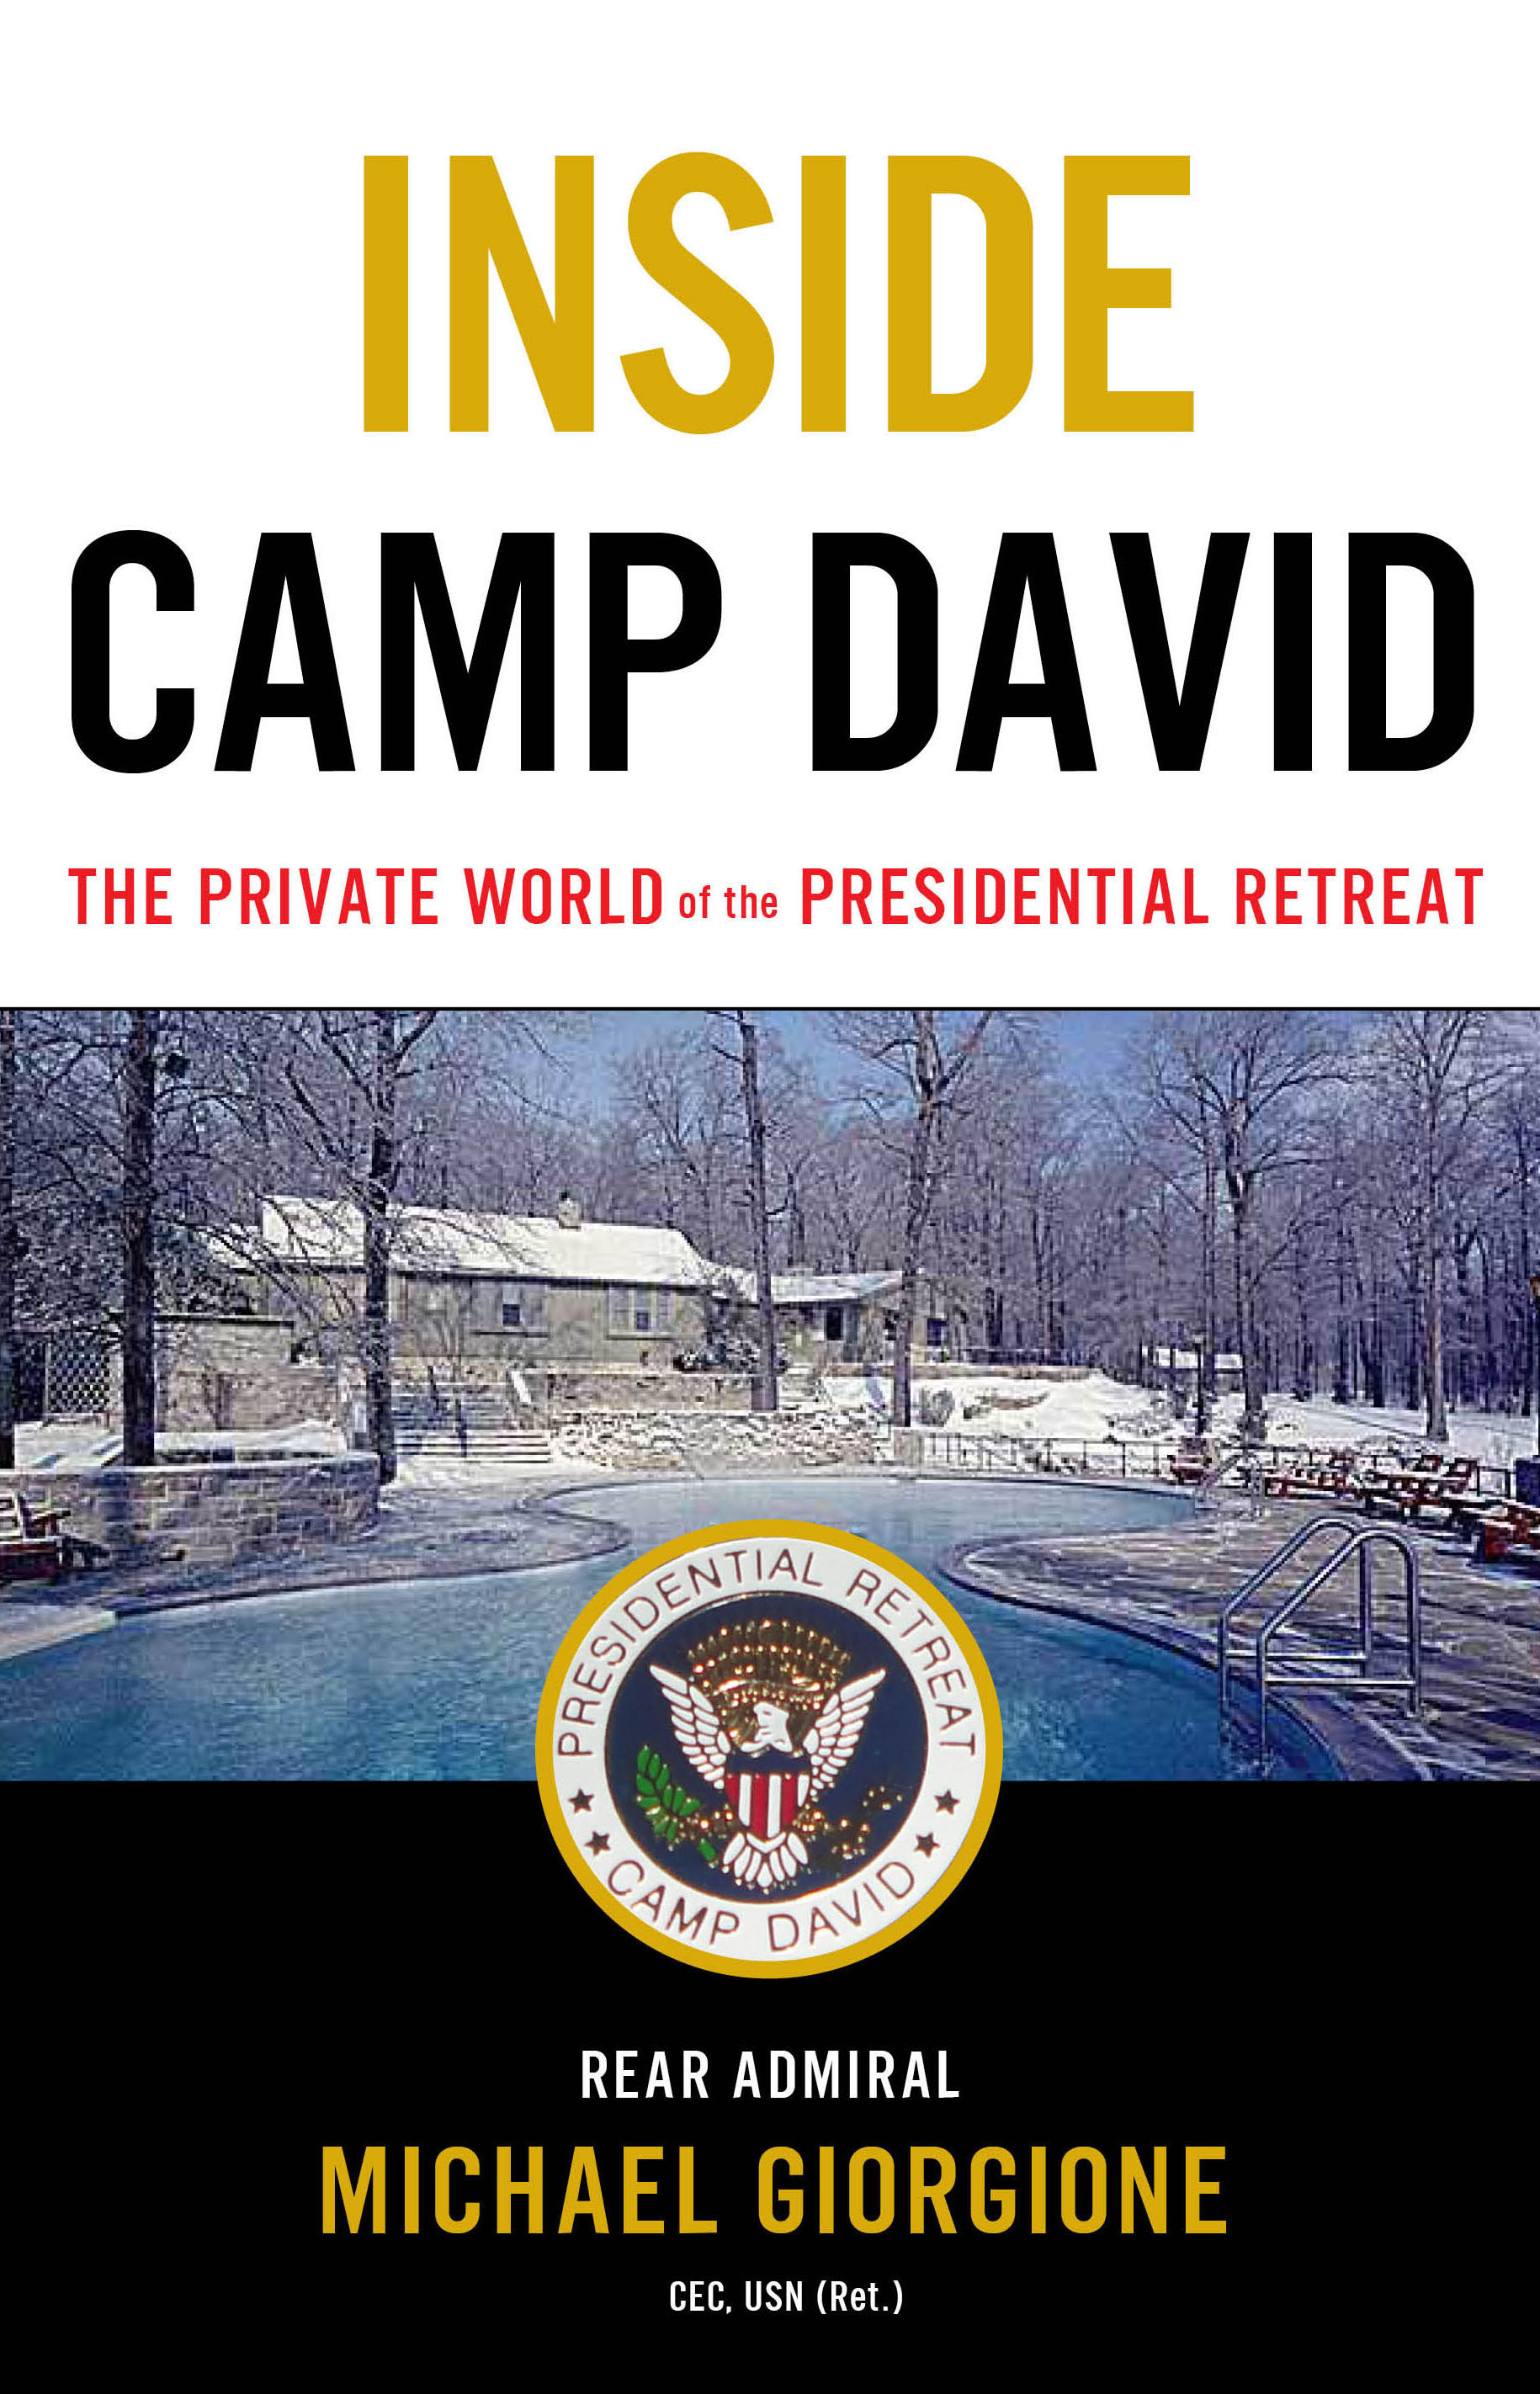 Inside Camp David by Michael Giorgione